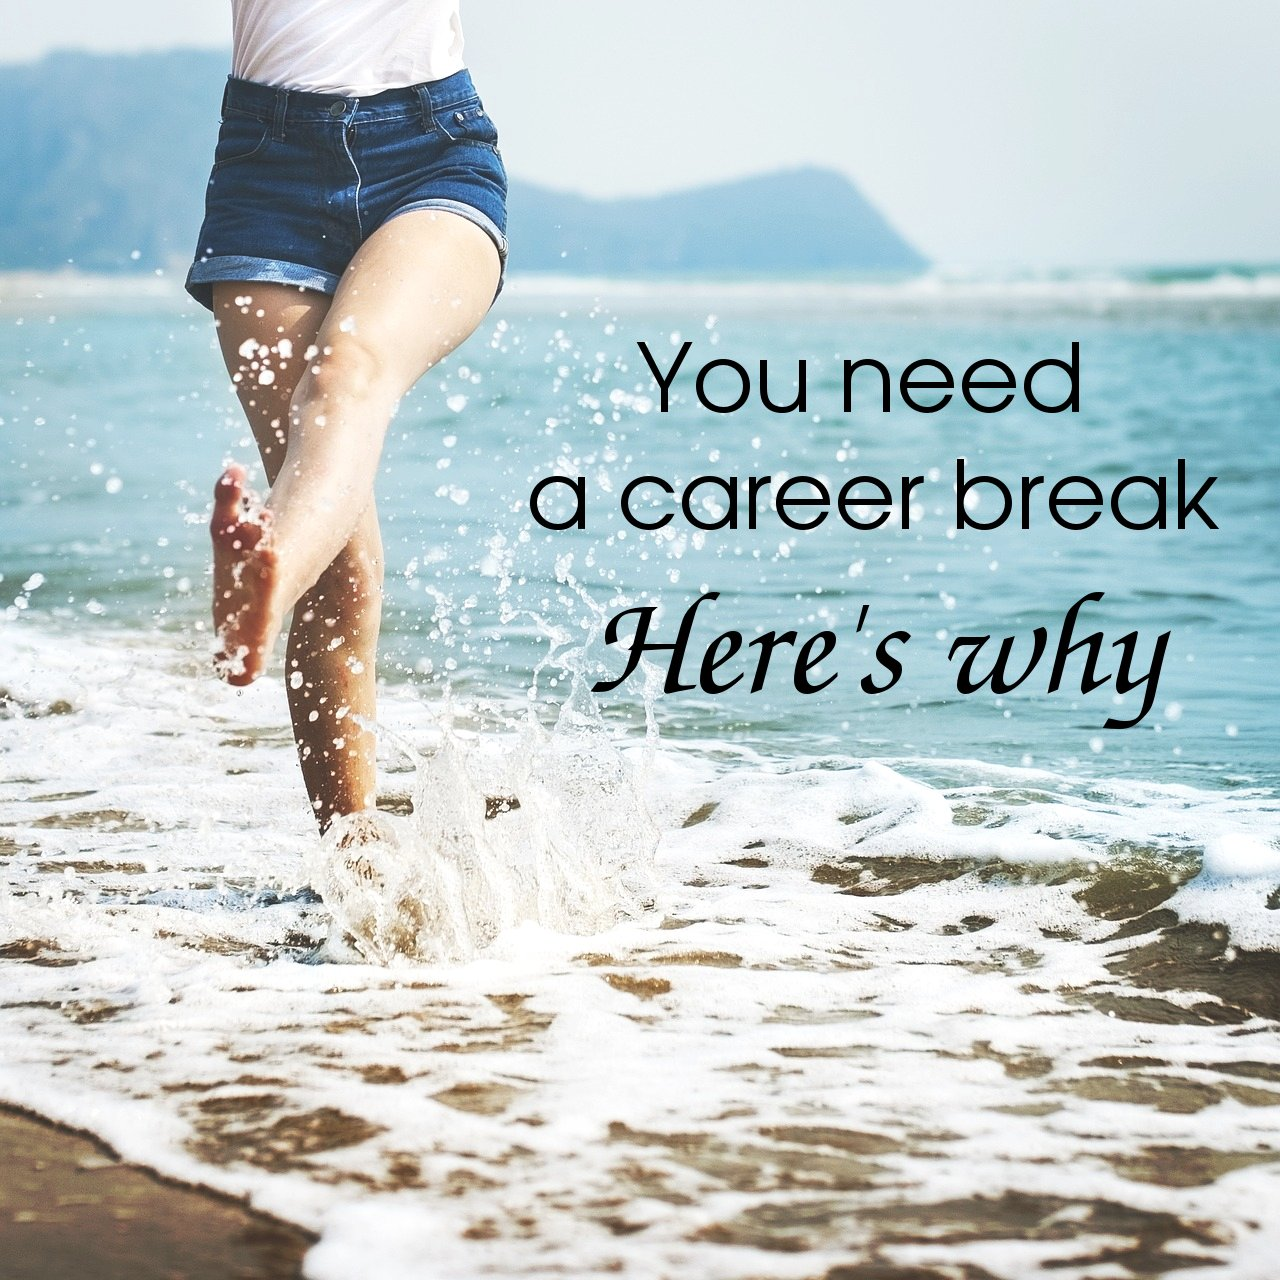 You need a career break - here's why